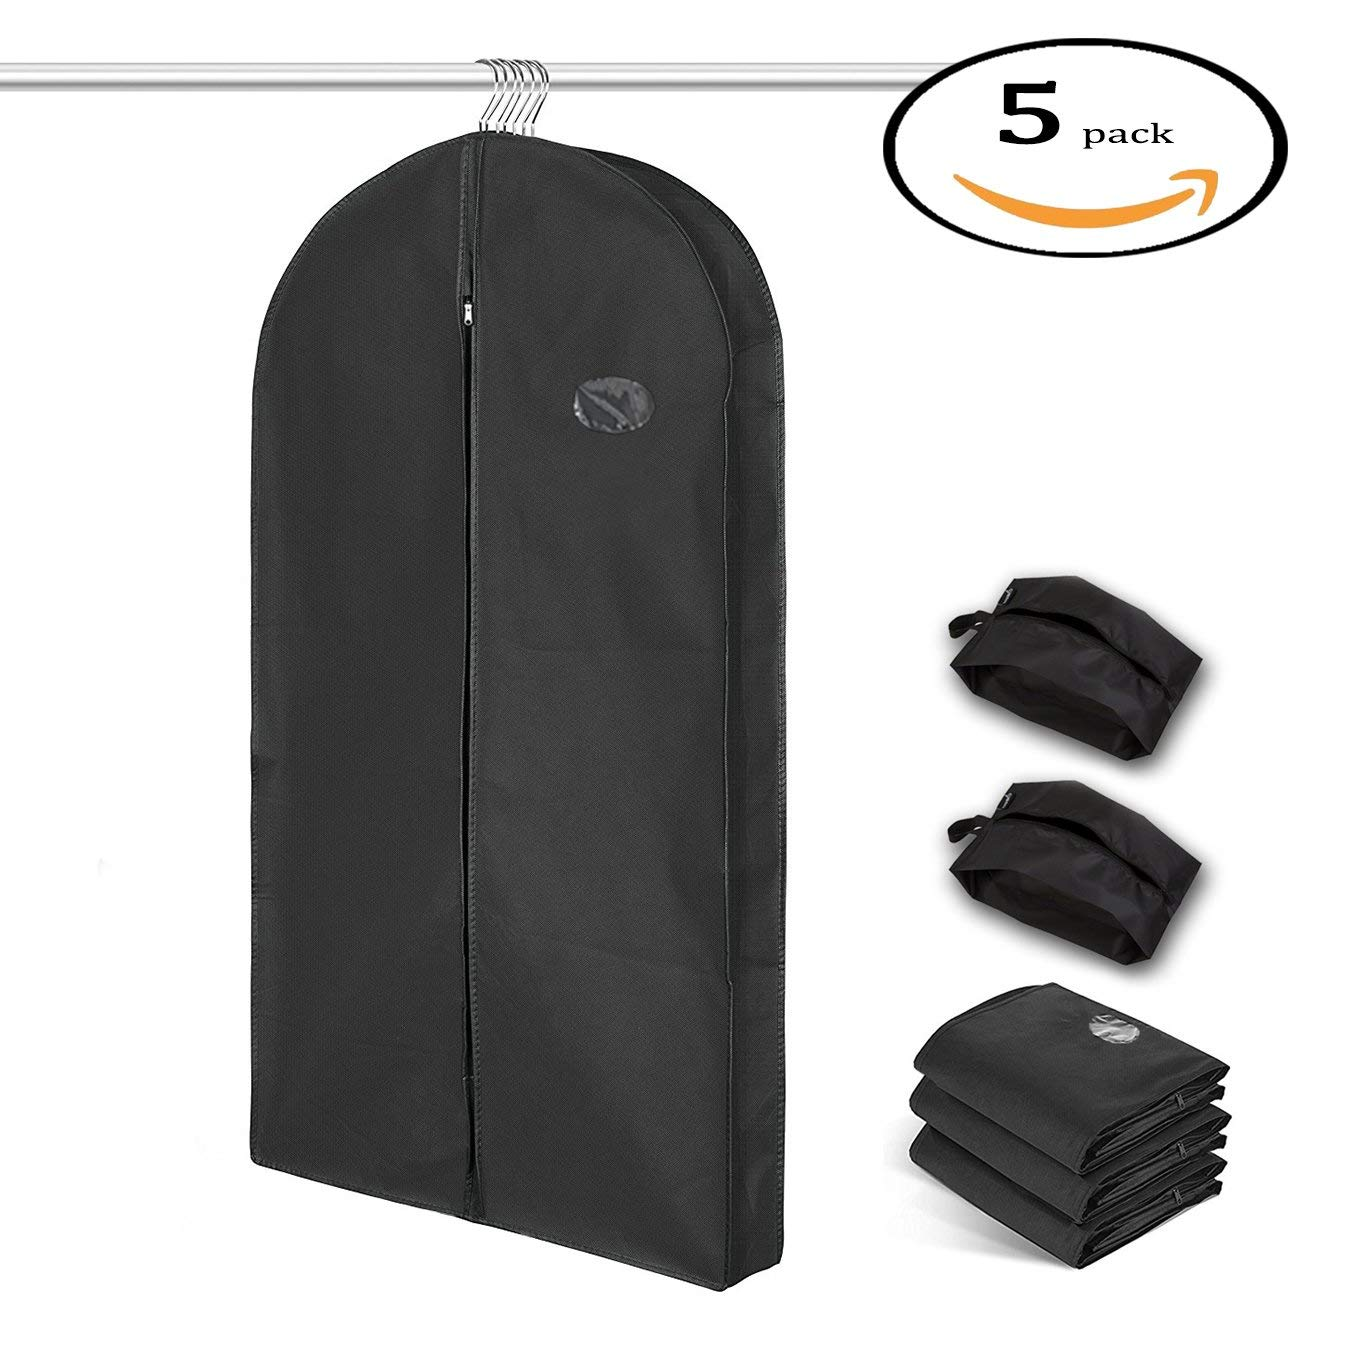 """DEKDEJA Garment Bag Covers for Luggage, Dresses, Linens, Storage or Travel 44""""×3 Suit Bag with Clear Window, Two Shoe Bags, Pack of 5"""